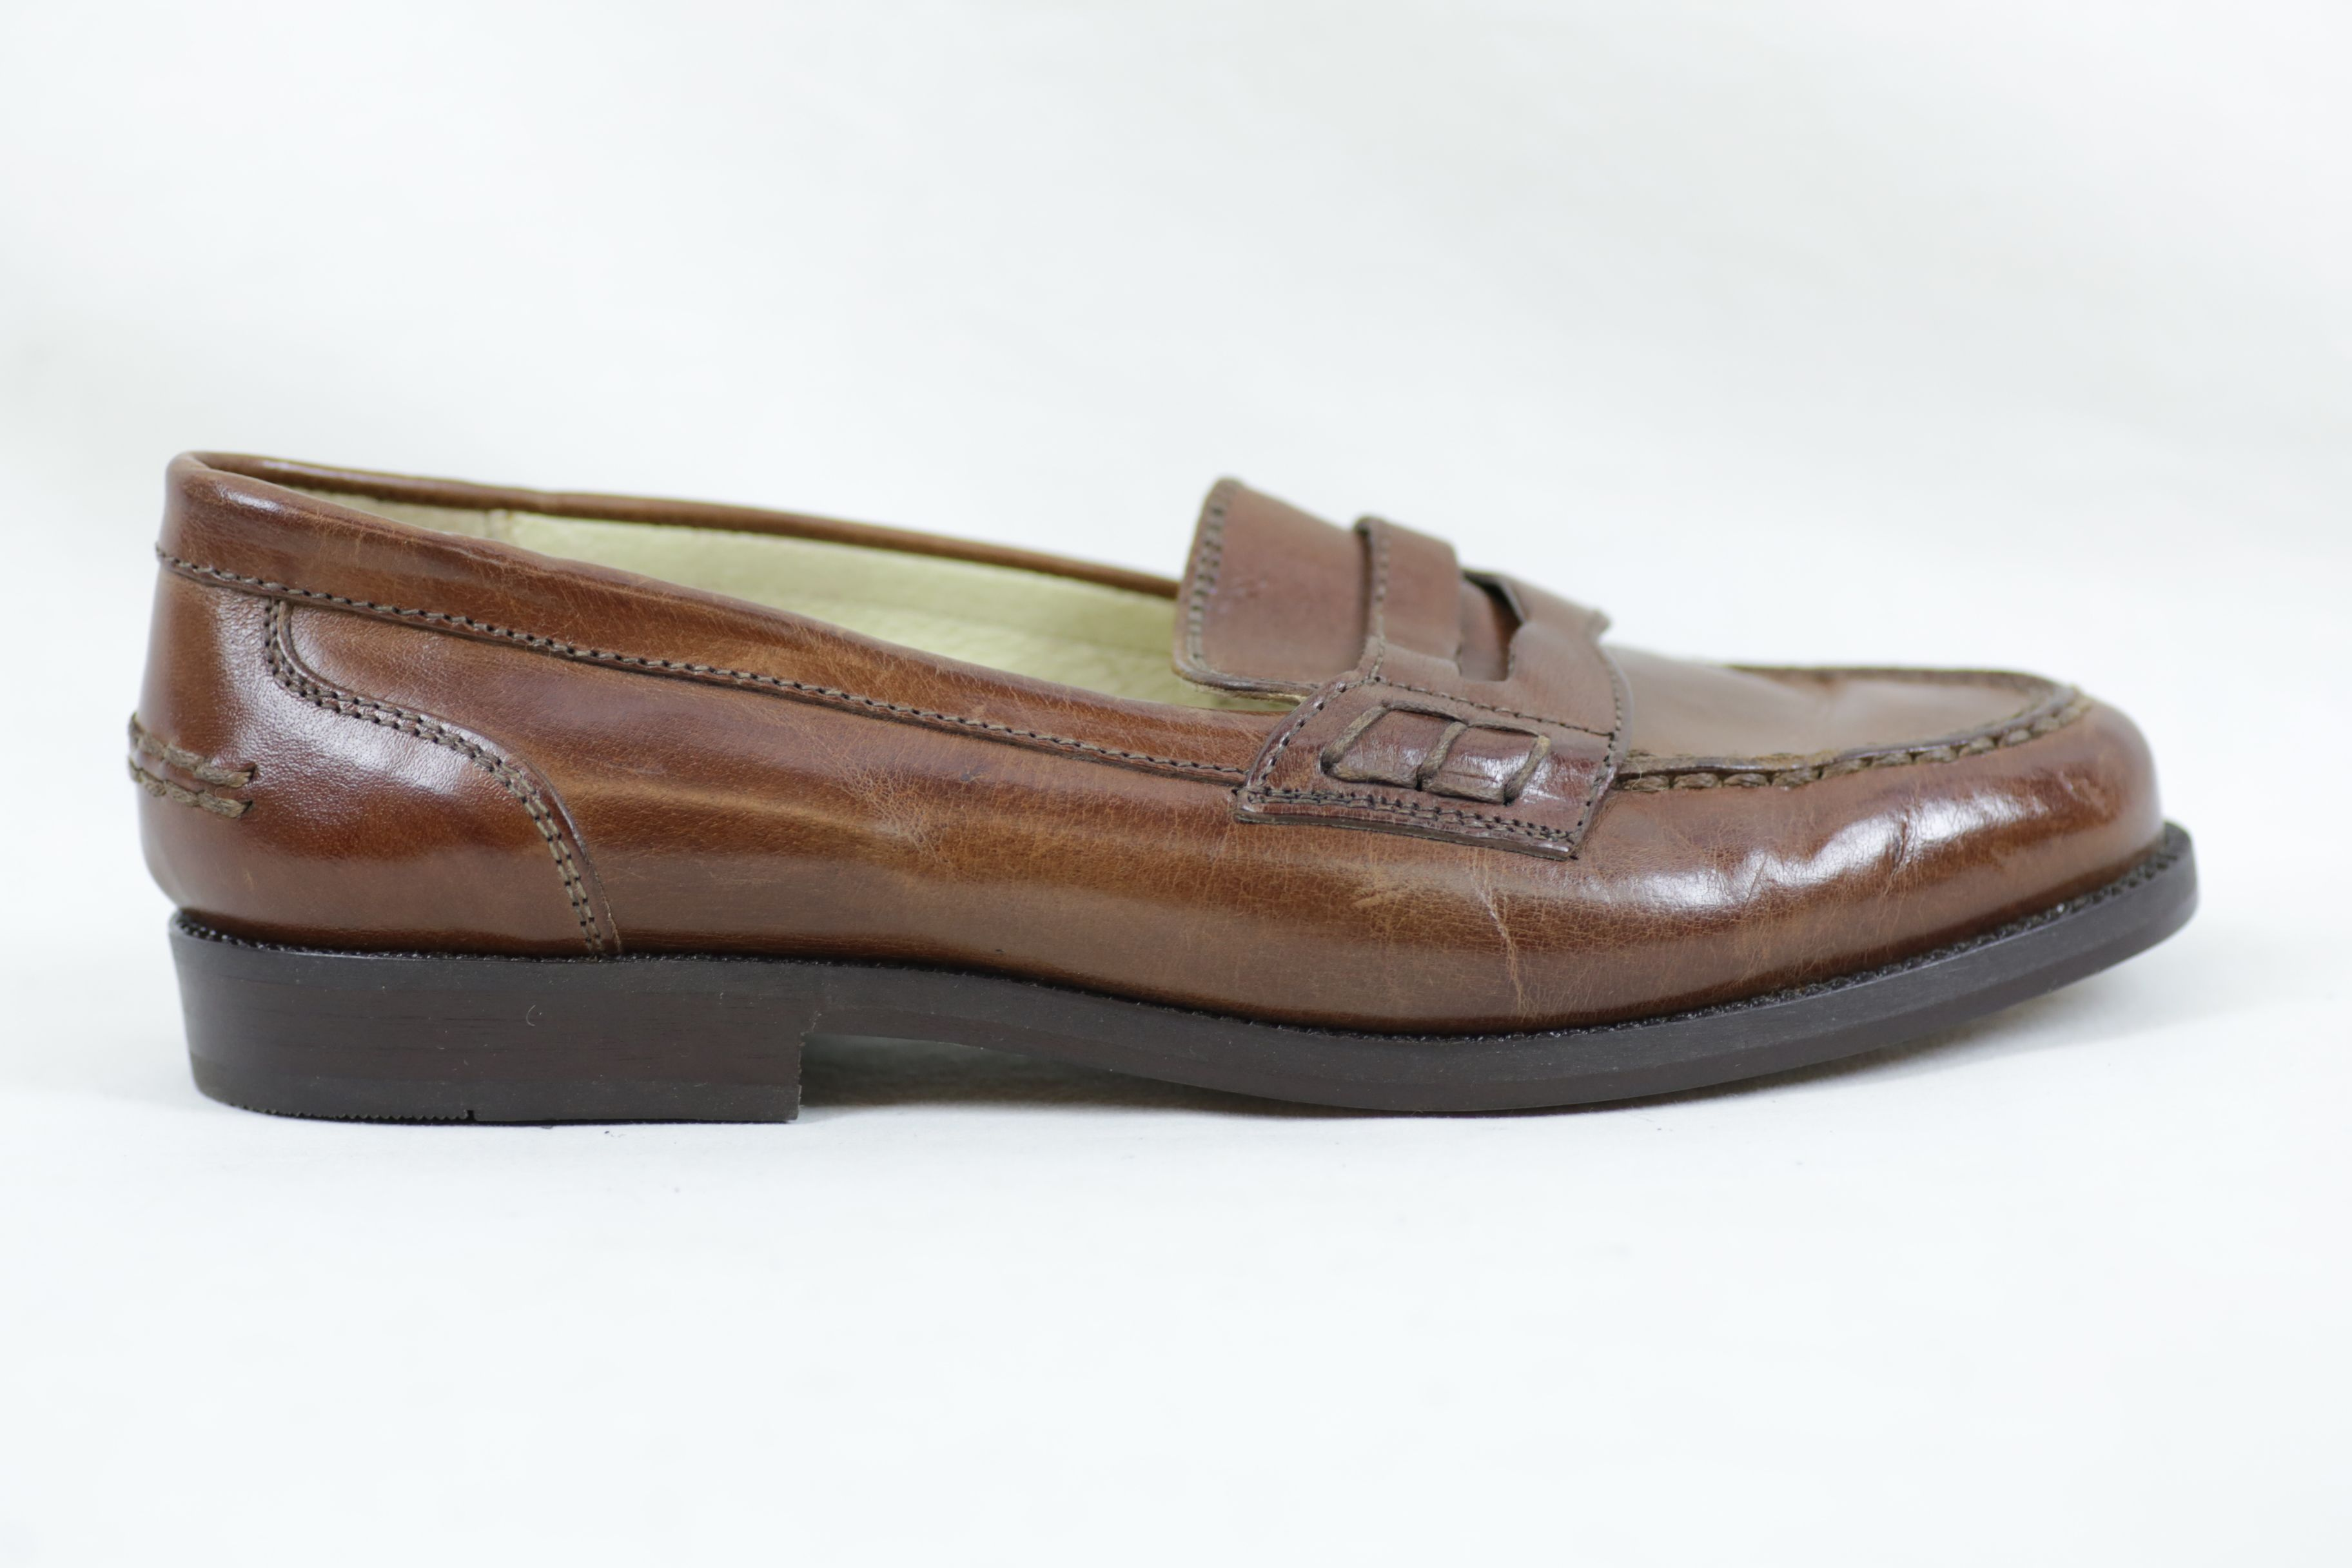 Bally Brim Classic Mid Brown Leather Shoes / Loafers - Size EU 36.5 UK 3.5 Thumbnail 10